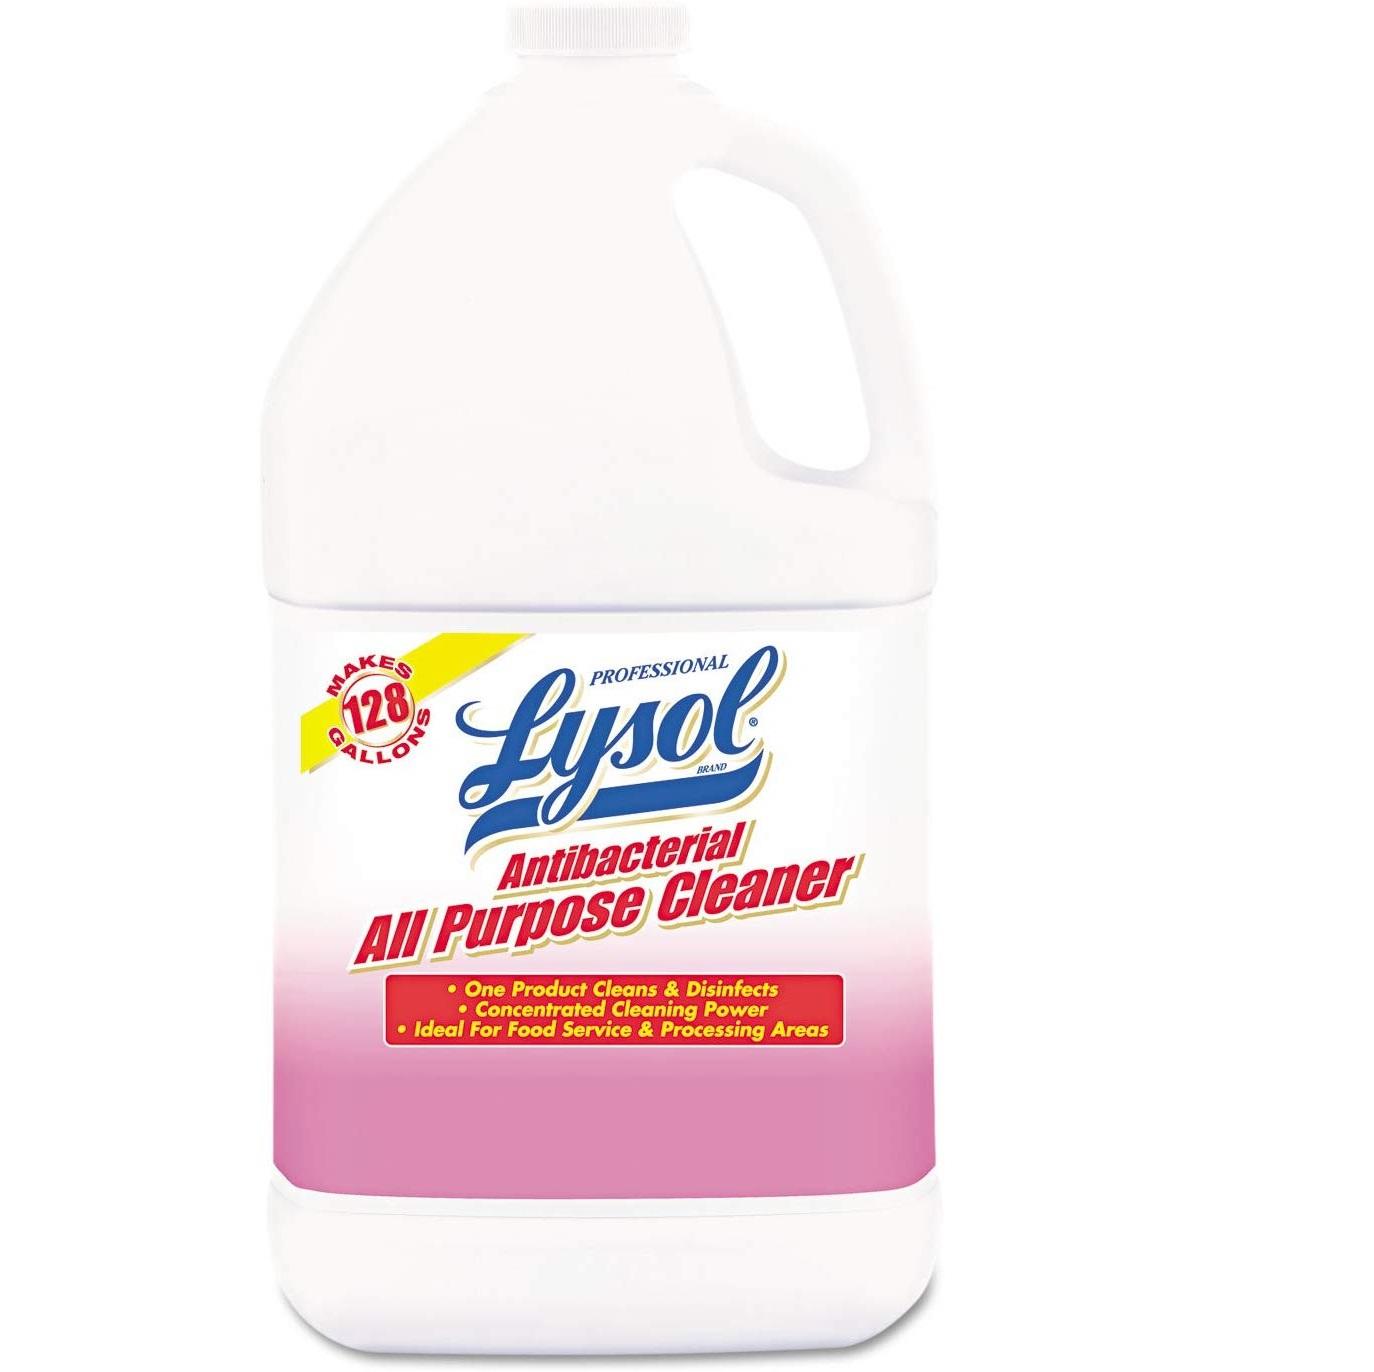 Lysol Antibacterial All-Purpose Cleaner - Cocncentrate, 1 gal Bottle, 4/Case